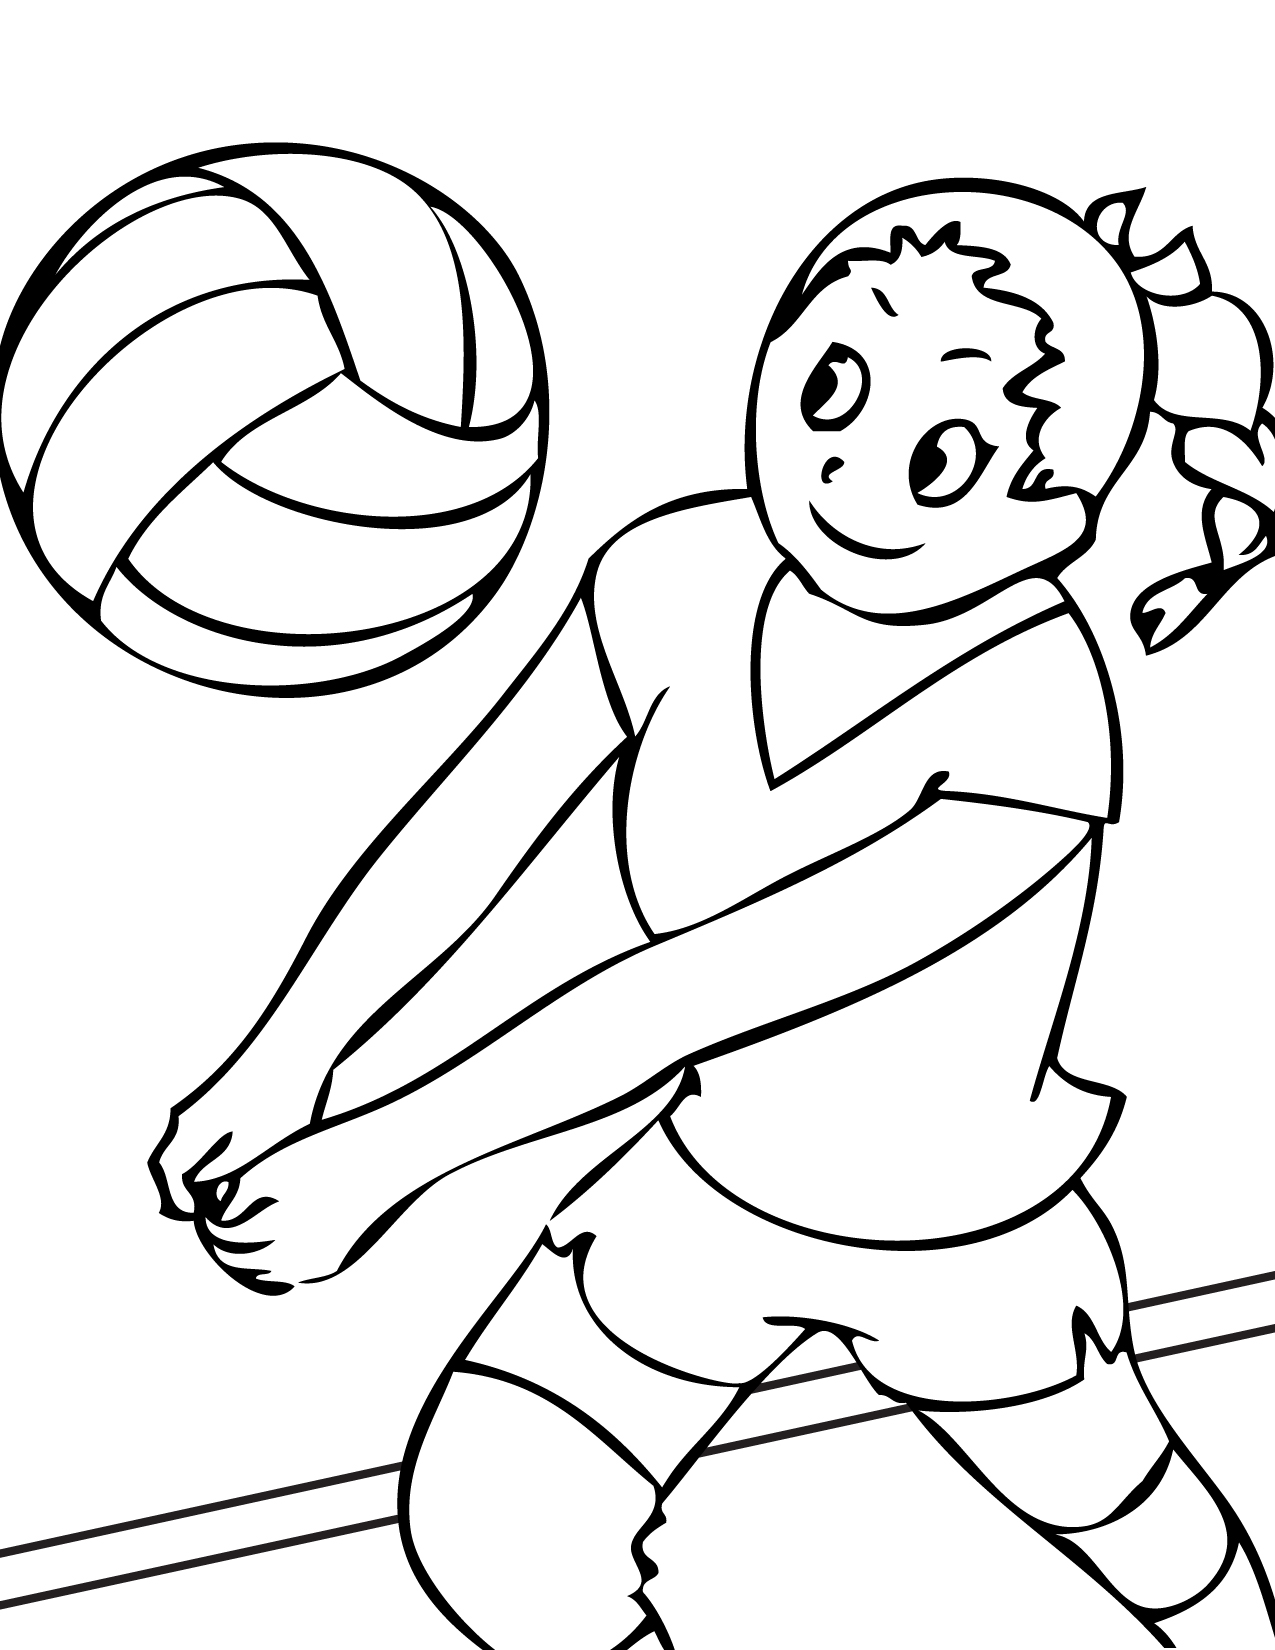 1275x1650 Free Printable Sports Coloring Pages For Kids